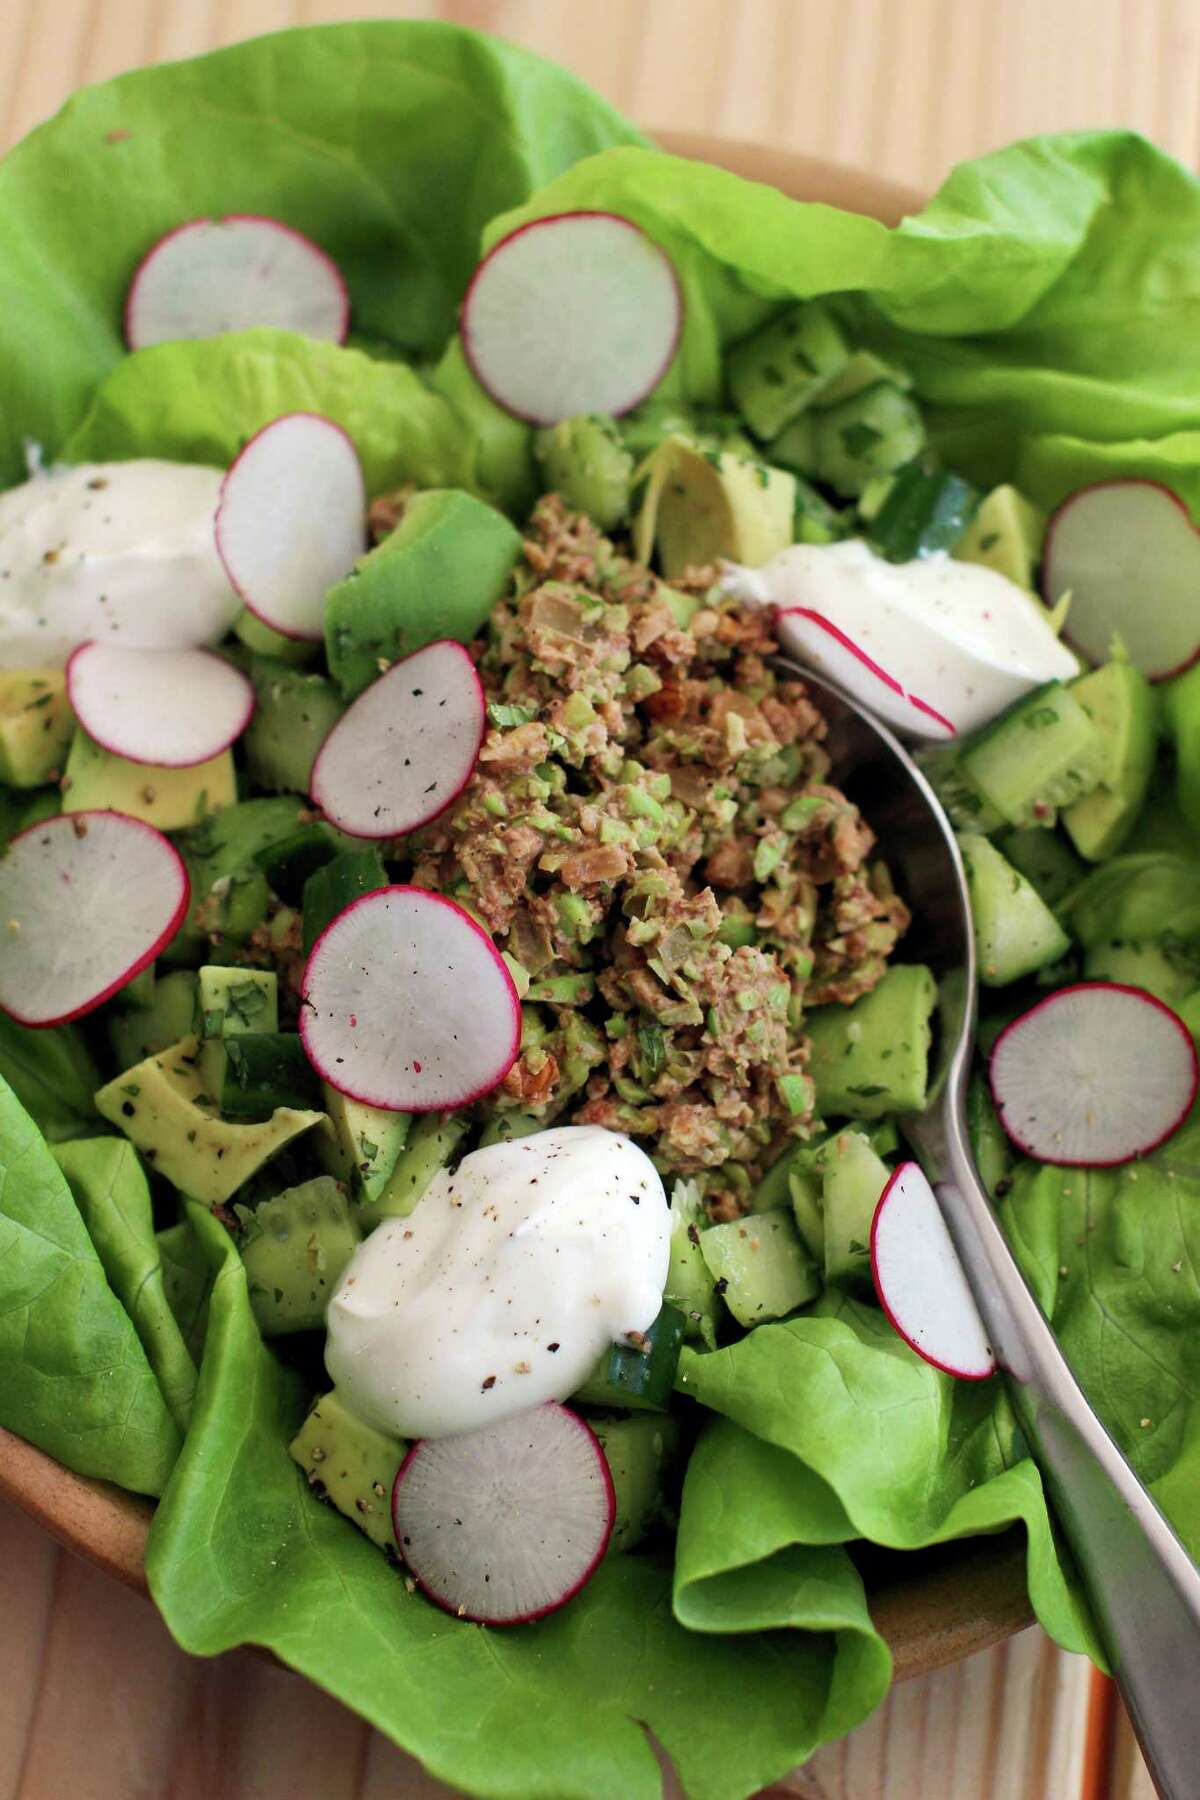 """Edamame and walnut lettuce wraps pair firm soybeans with crunchy walnuts and some spices to make a cold vegetarian """"meat"""" for lettuce wraps or tacos."""